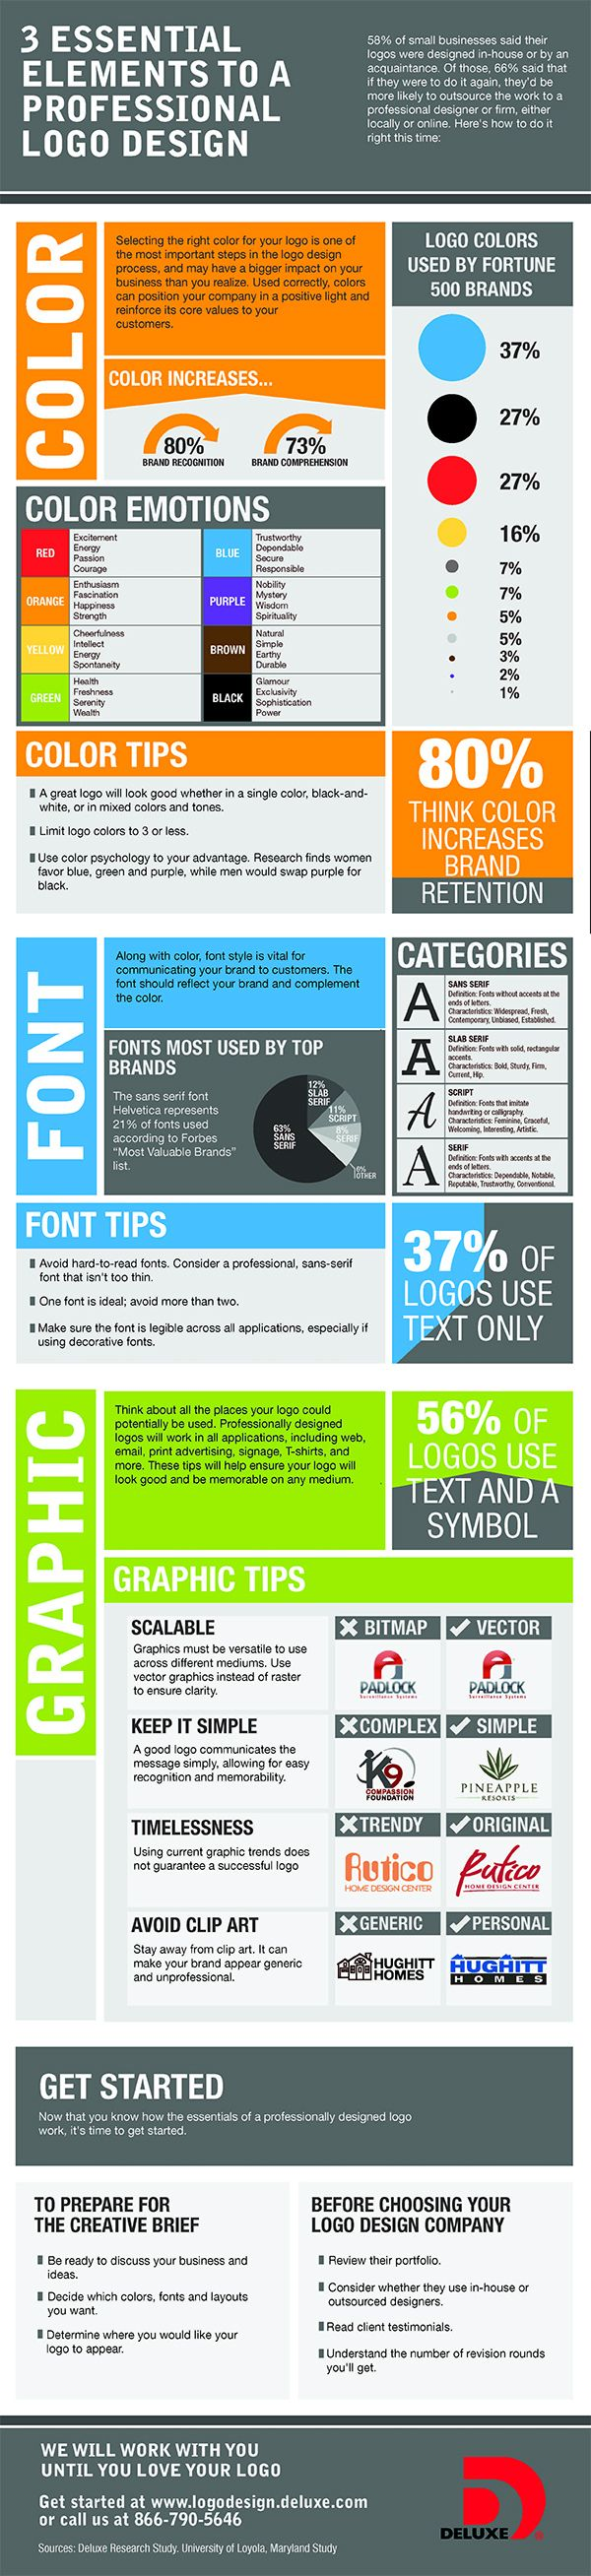 Logo Design Basics: 3 Essential Elements to a Professional Logo #Infographic